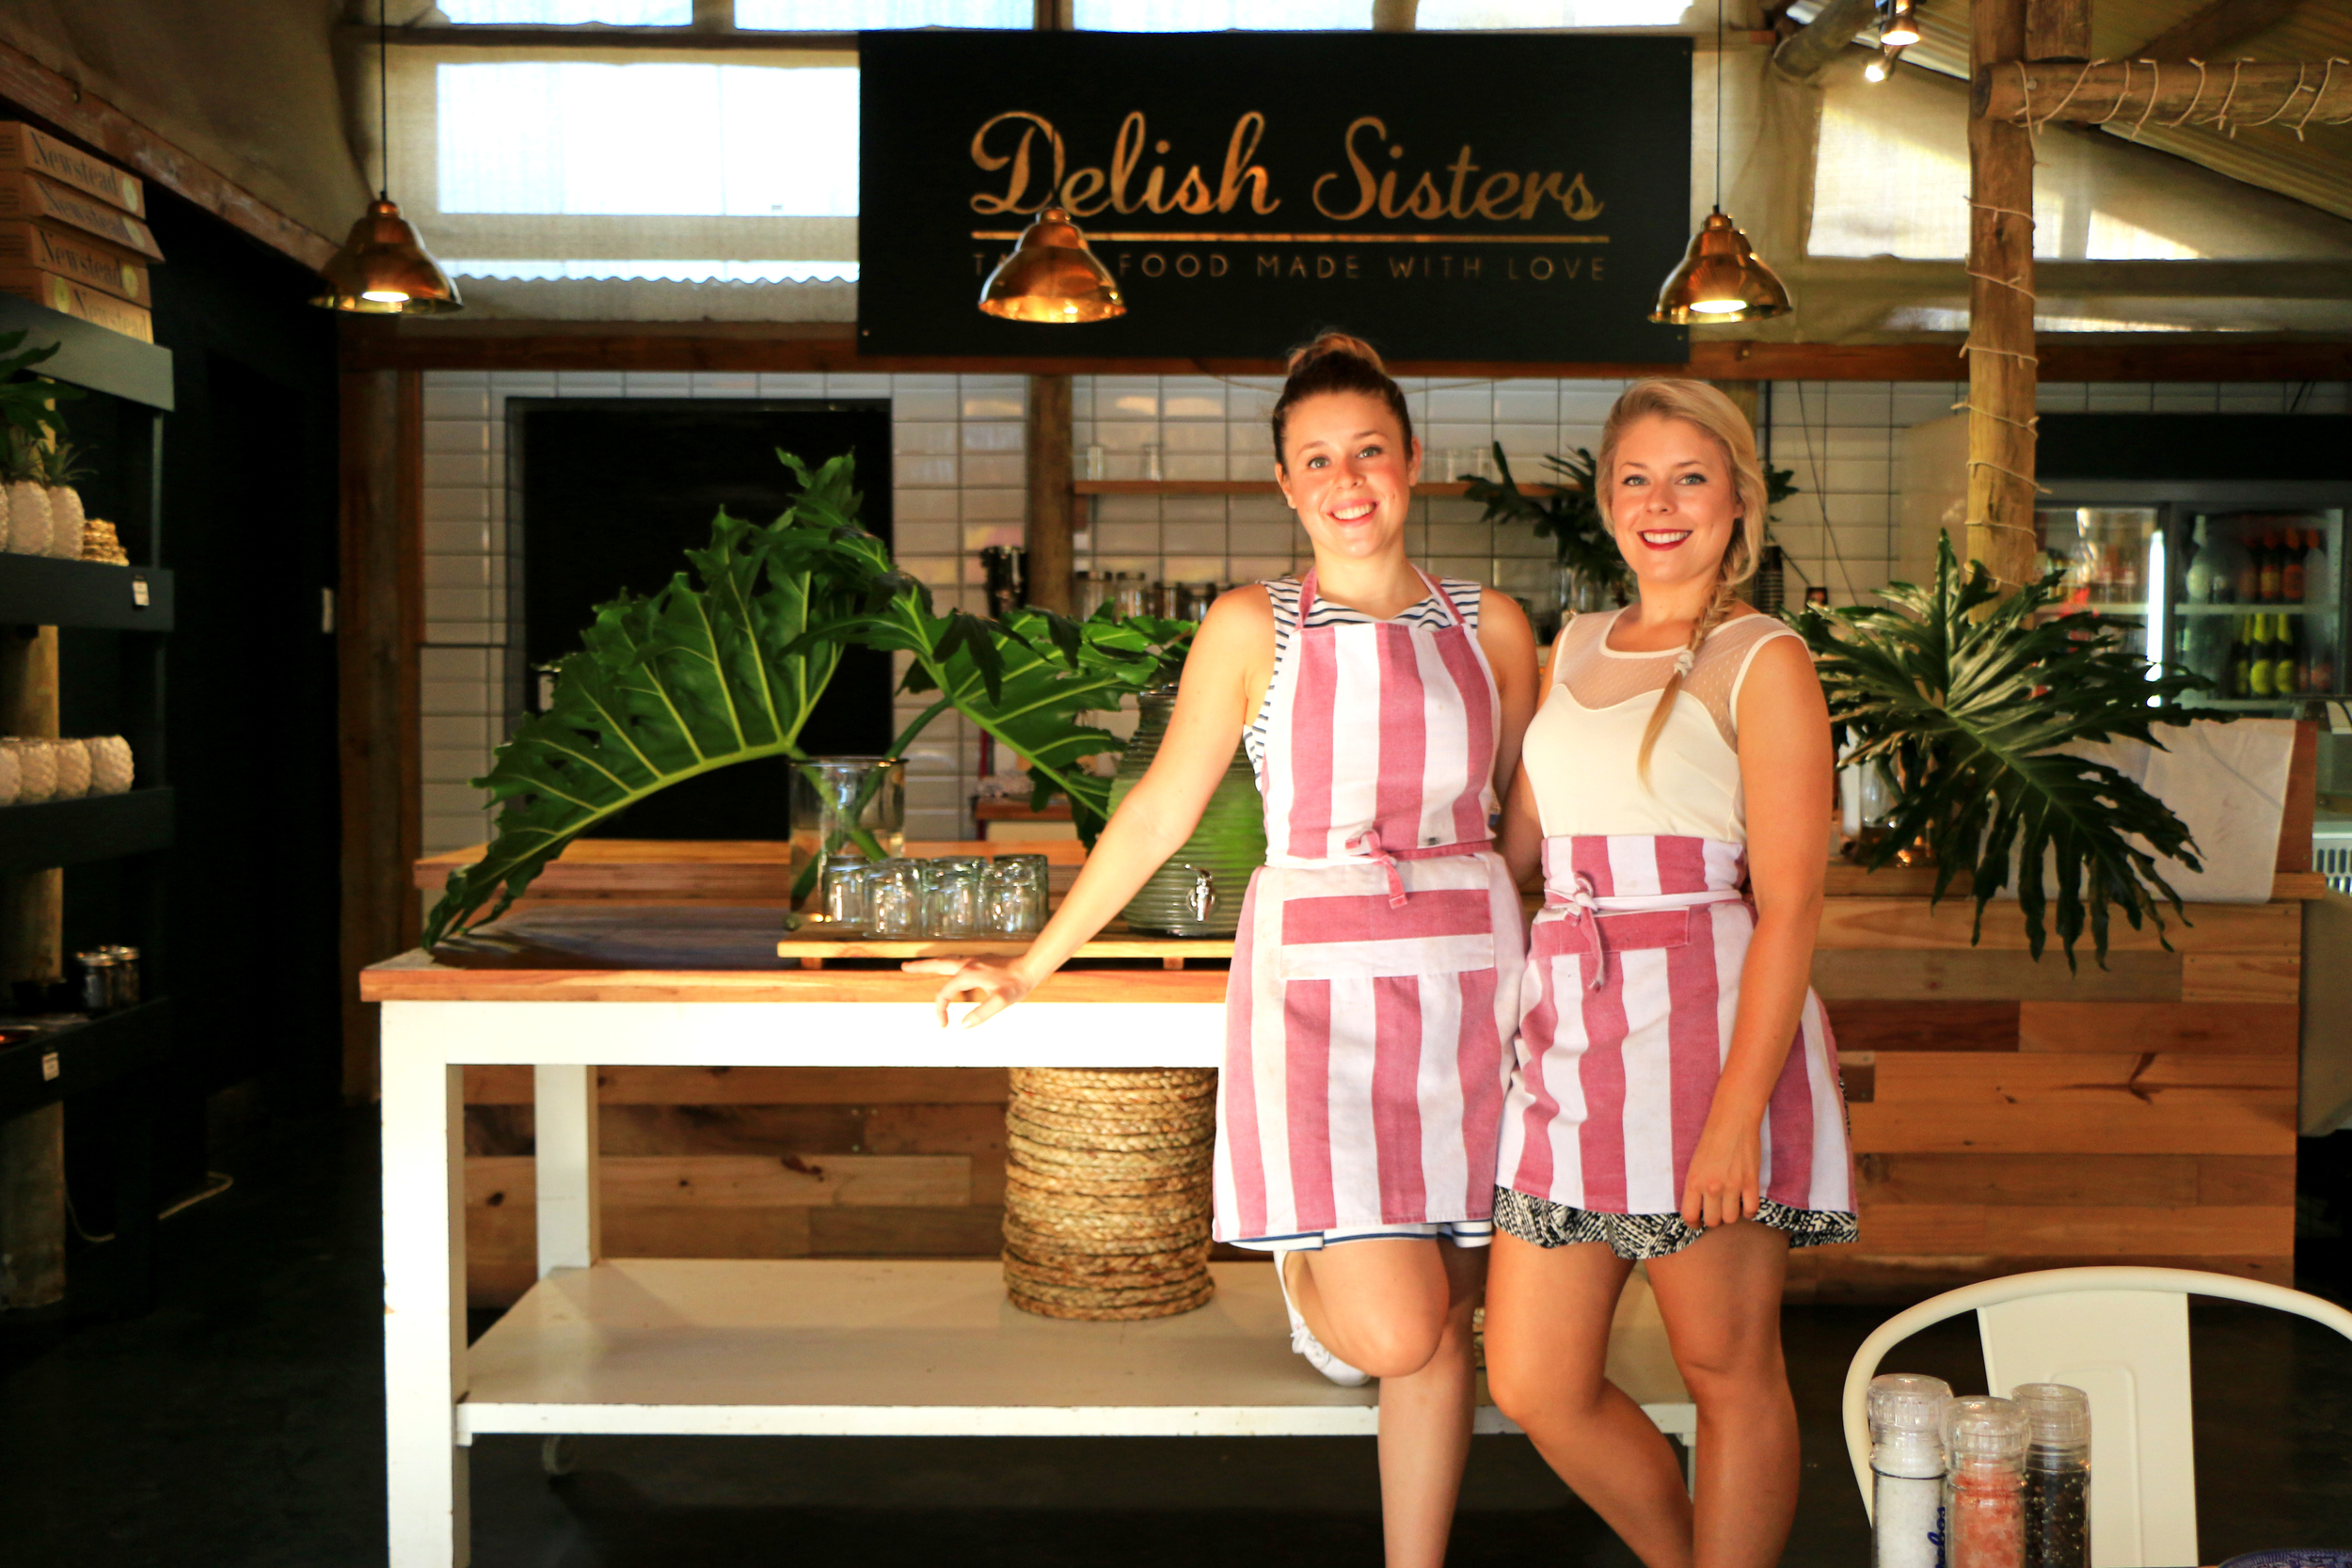 Delish Sisters Cafe - The heart of the business, the cafe serves up wholesome dishes using seasonal ingredients.